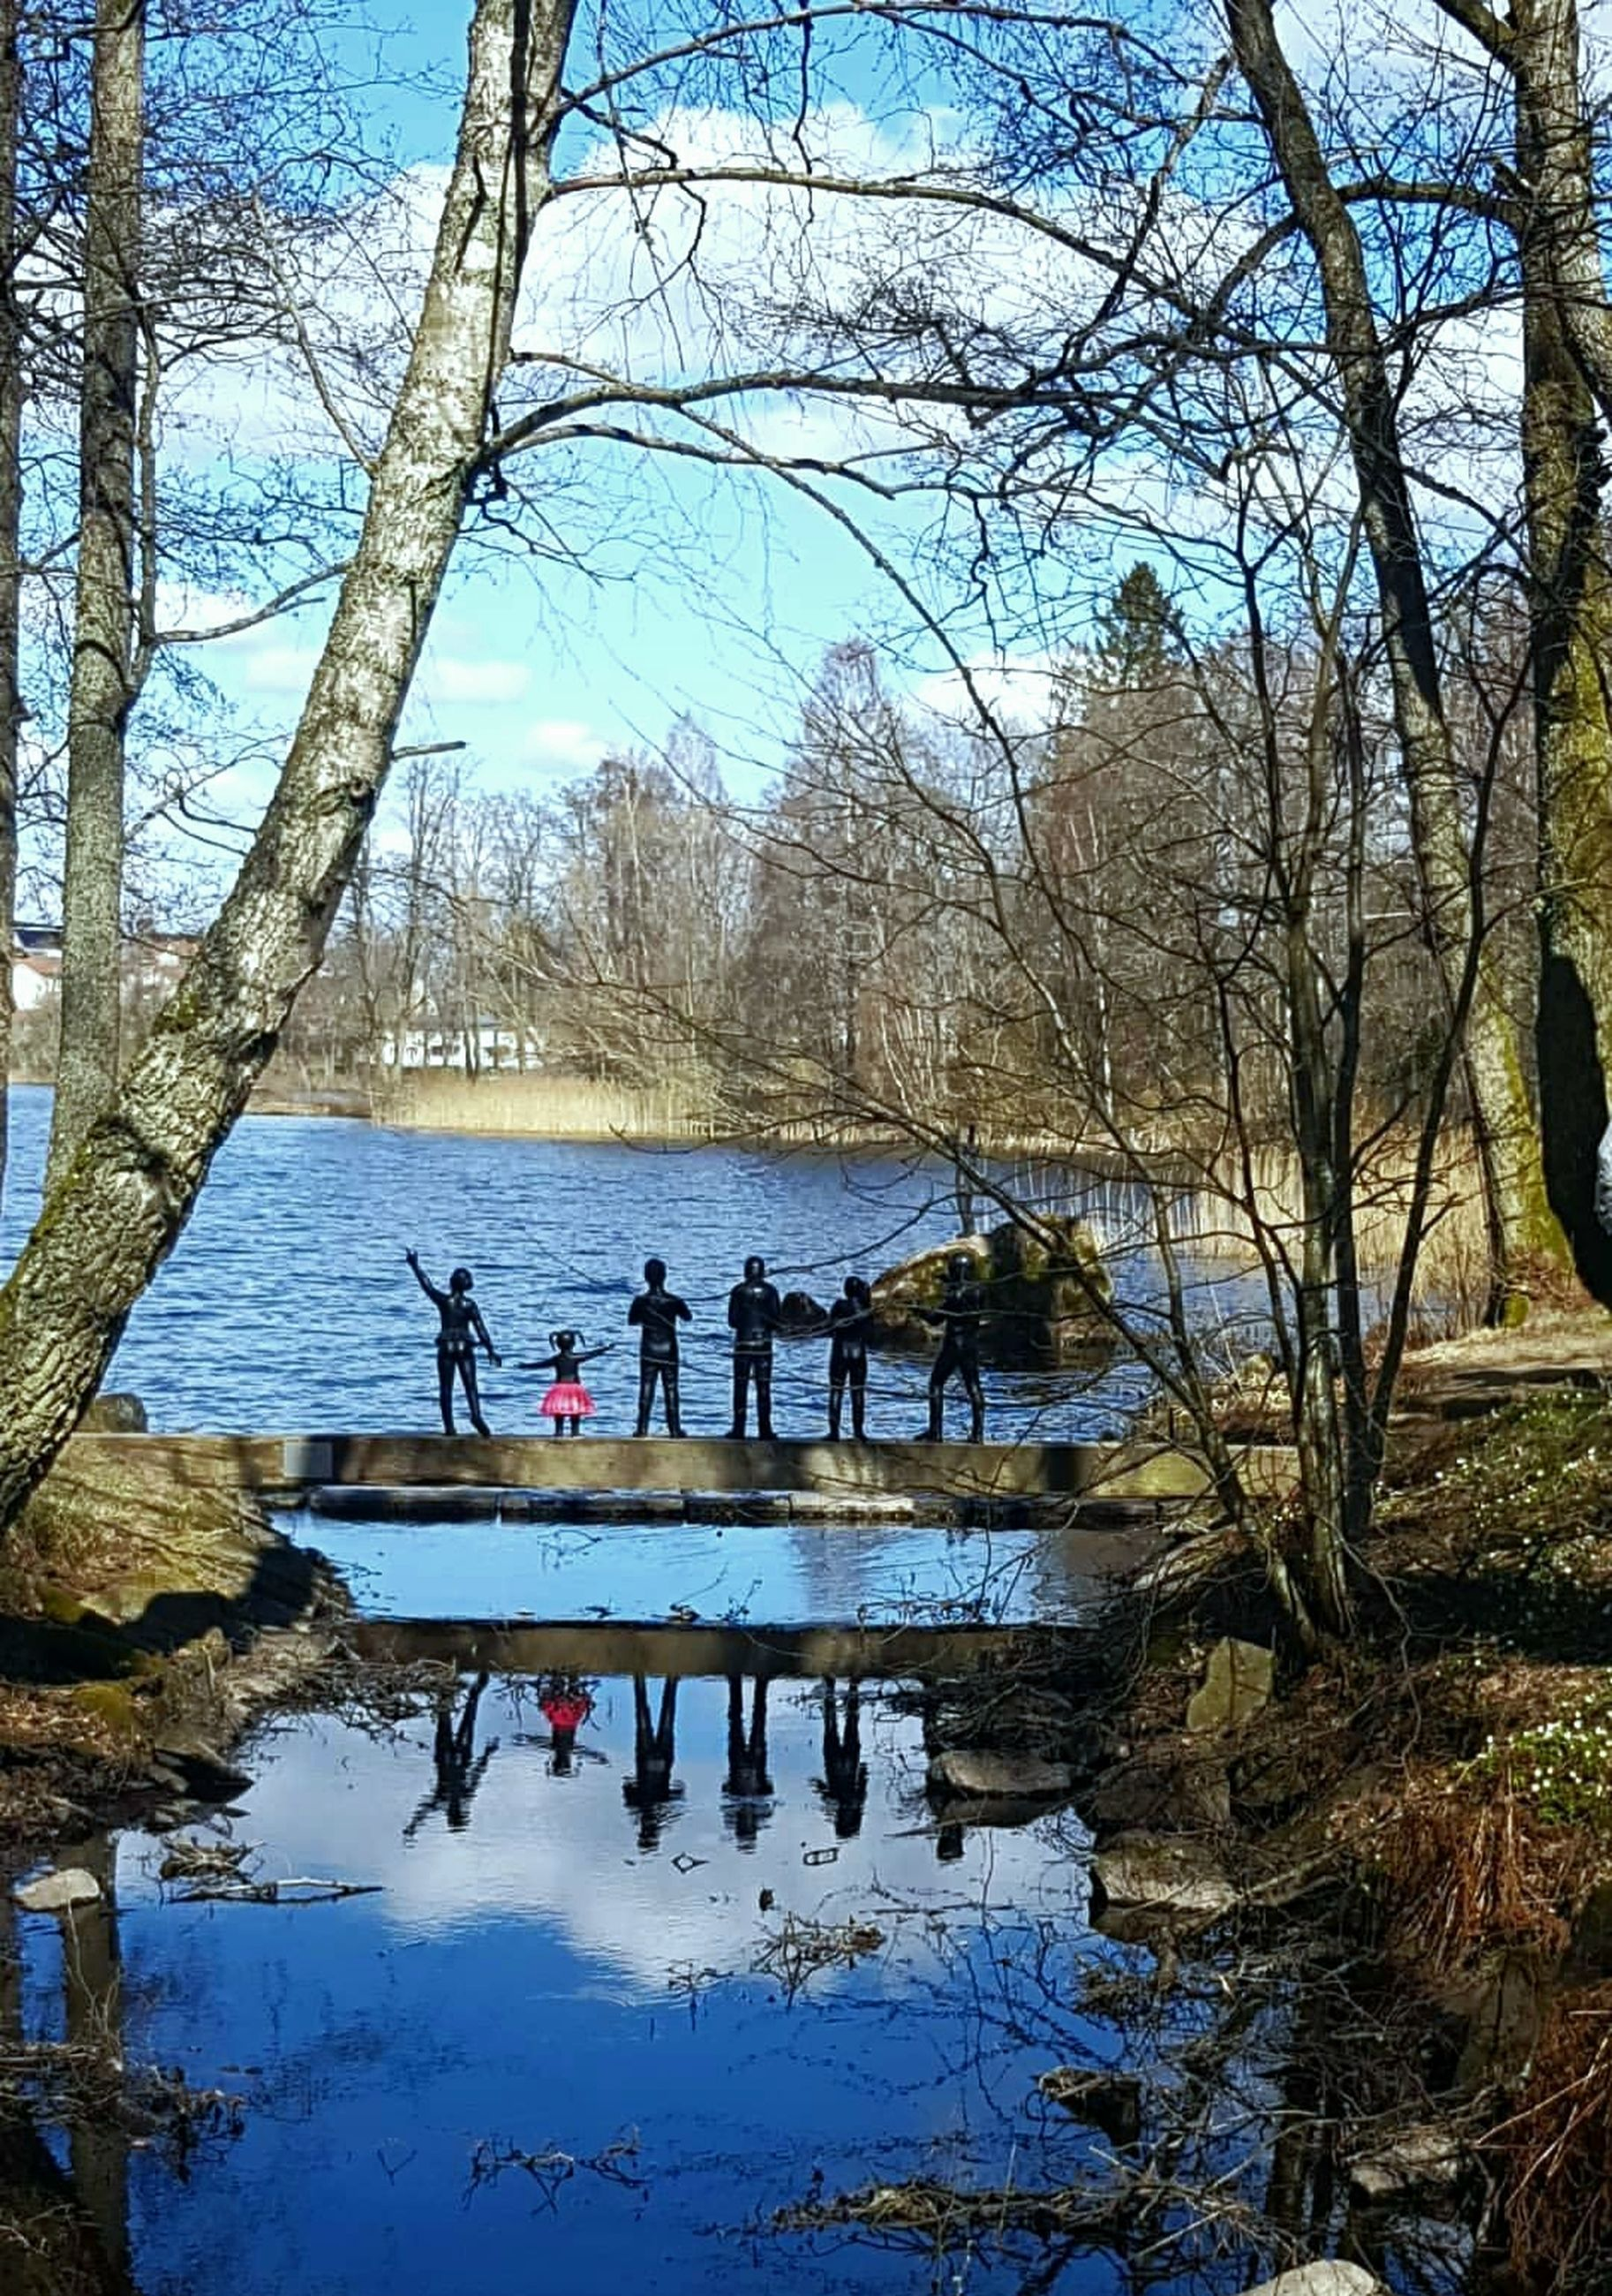 water, group of people, tree, real people, reflection, nature, men, plant, lake, day, bare tree, sky, leisure activity, lifestyles, people, branch, tree trunk, trunk, outdoors